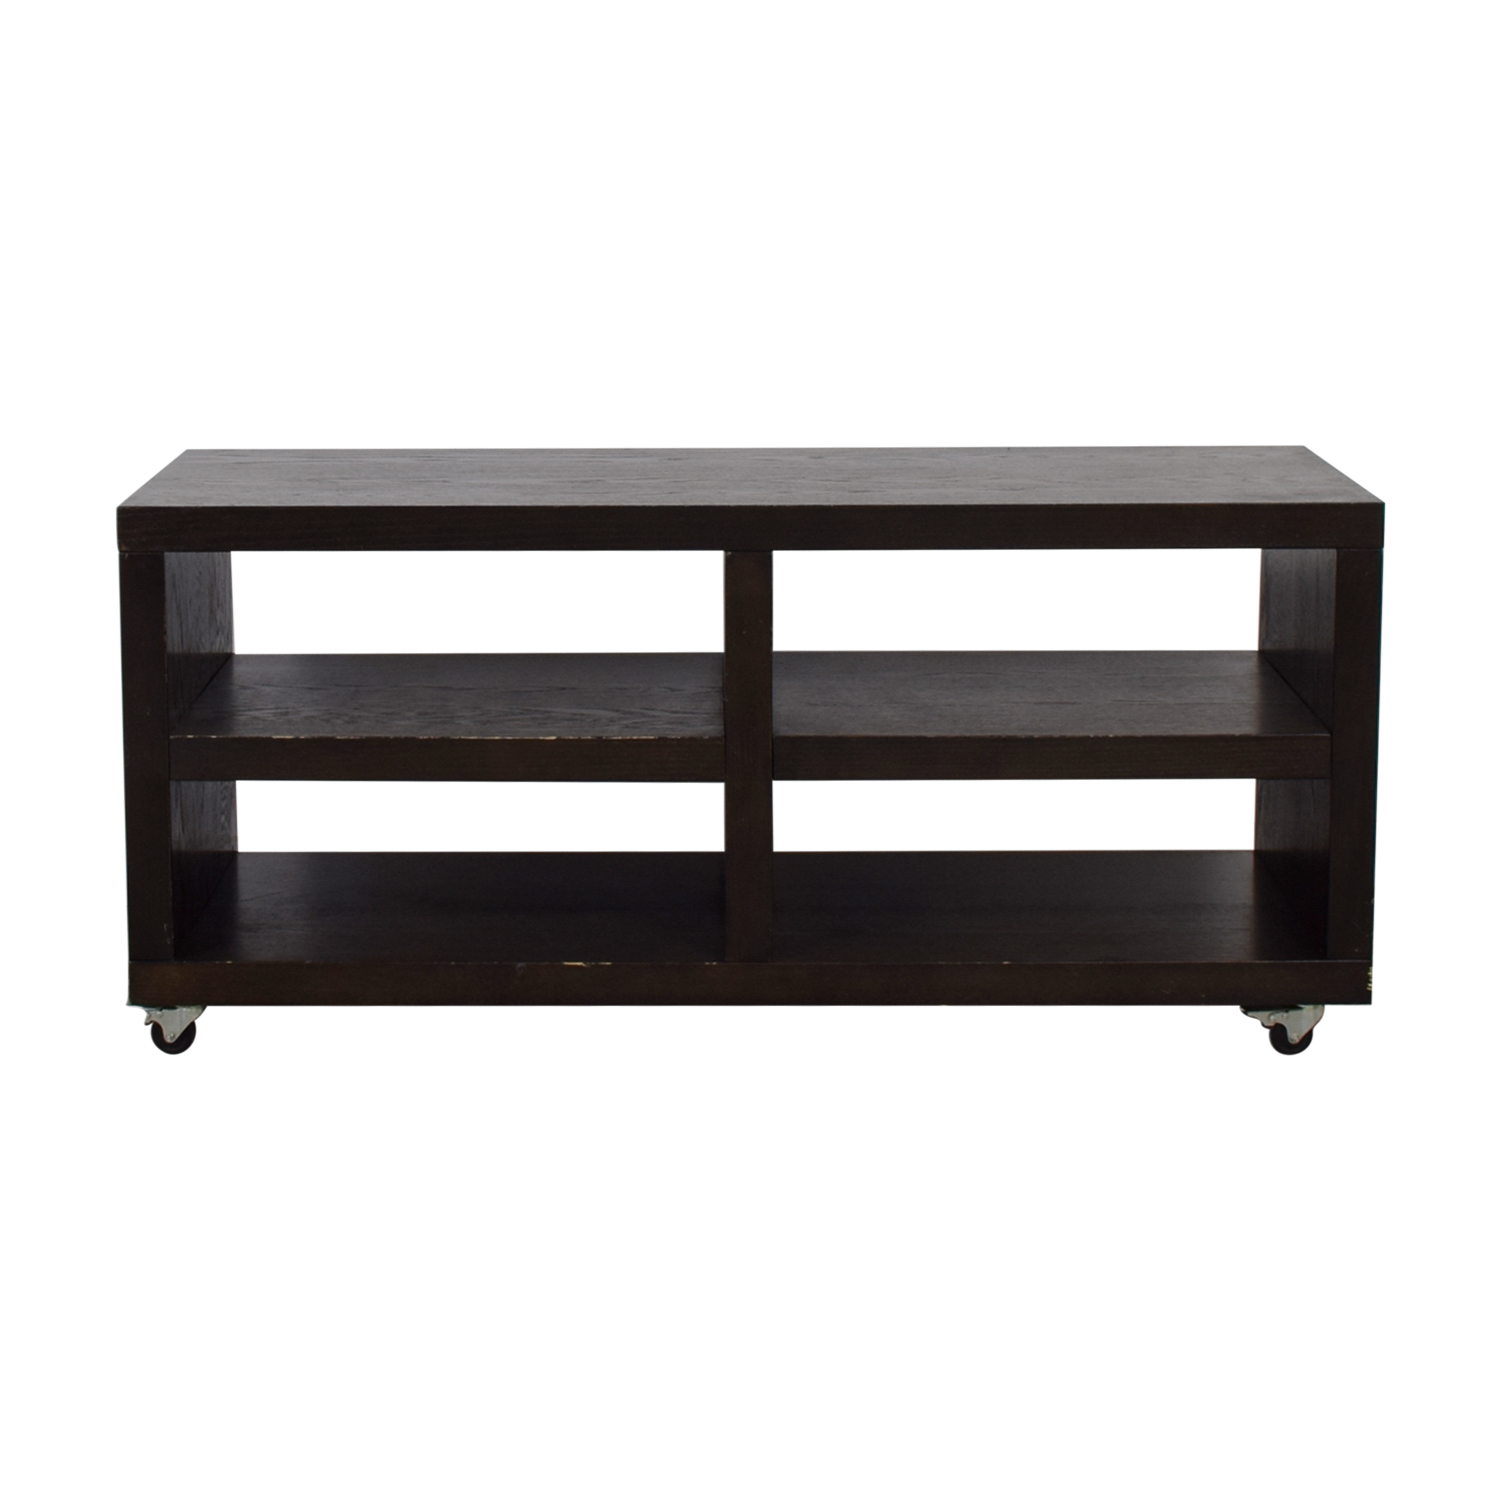 West Elm West Elm Wood TV Stand on Casters used